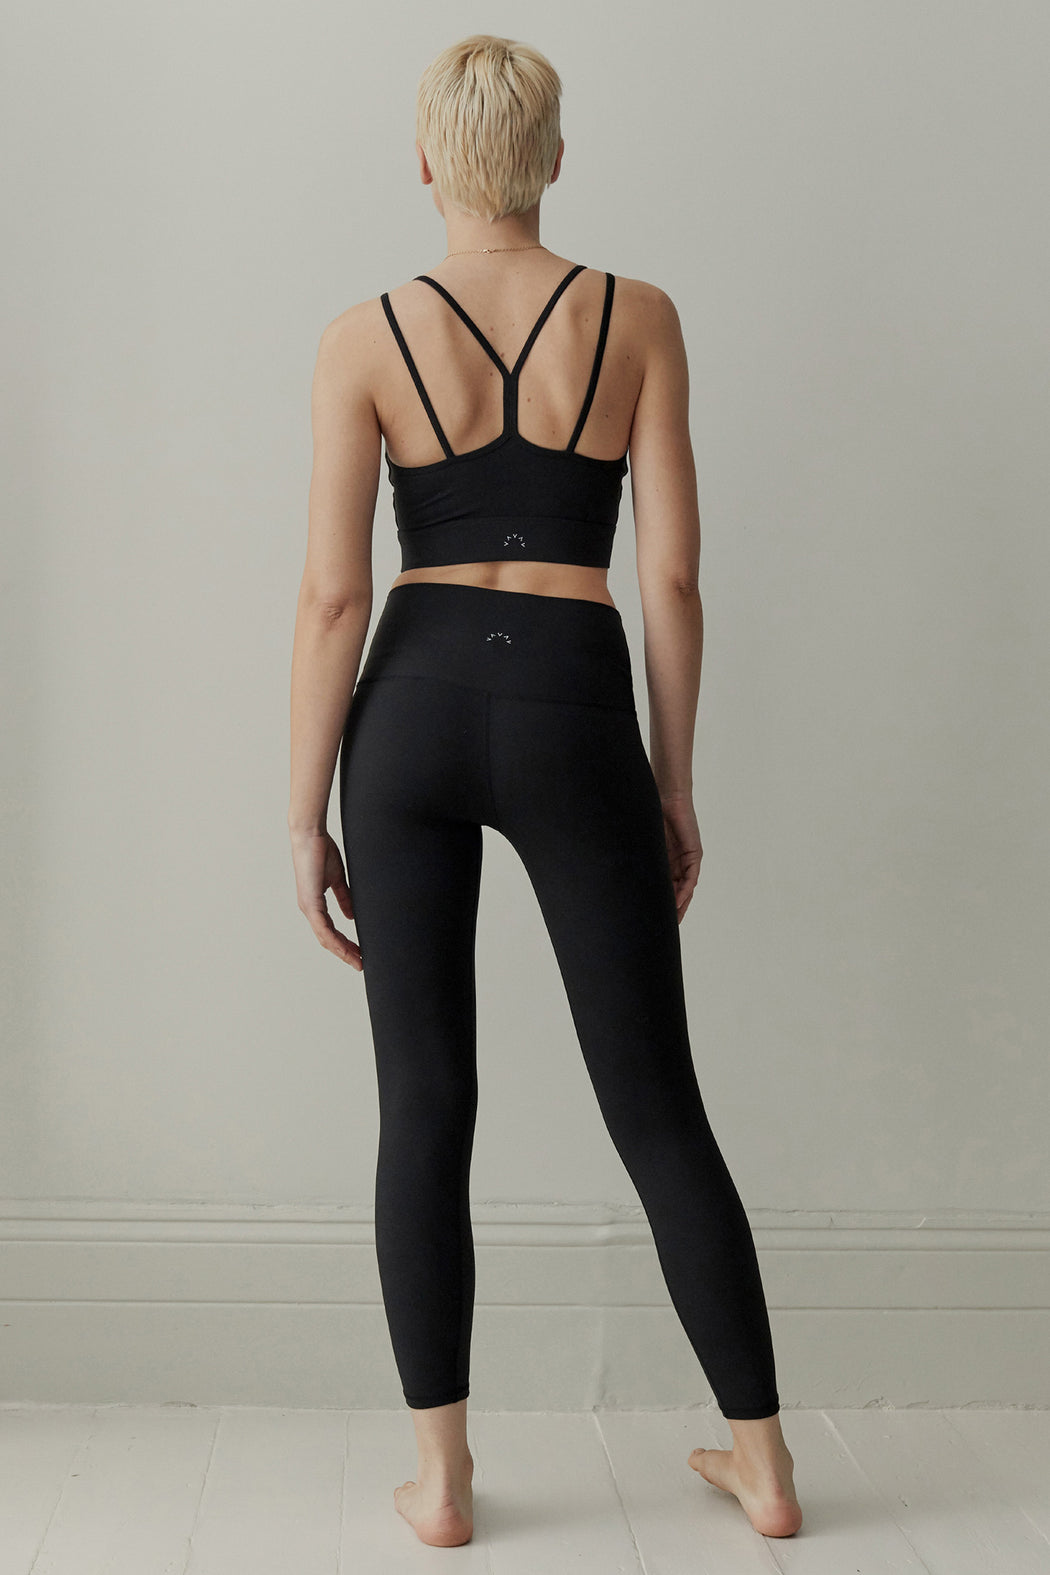 Varley-Whitley-Legging-Black